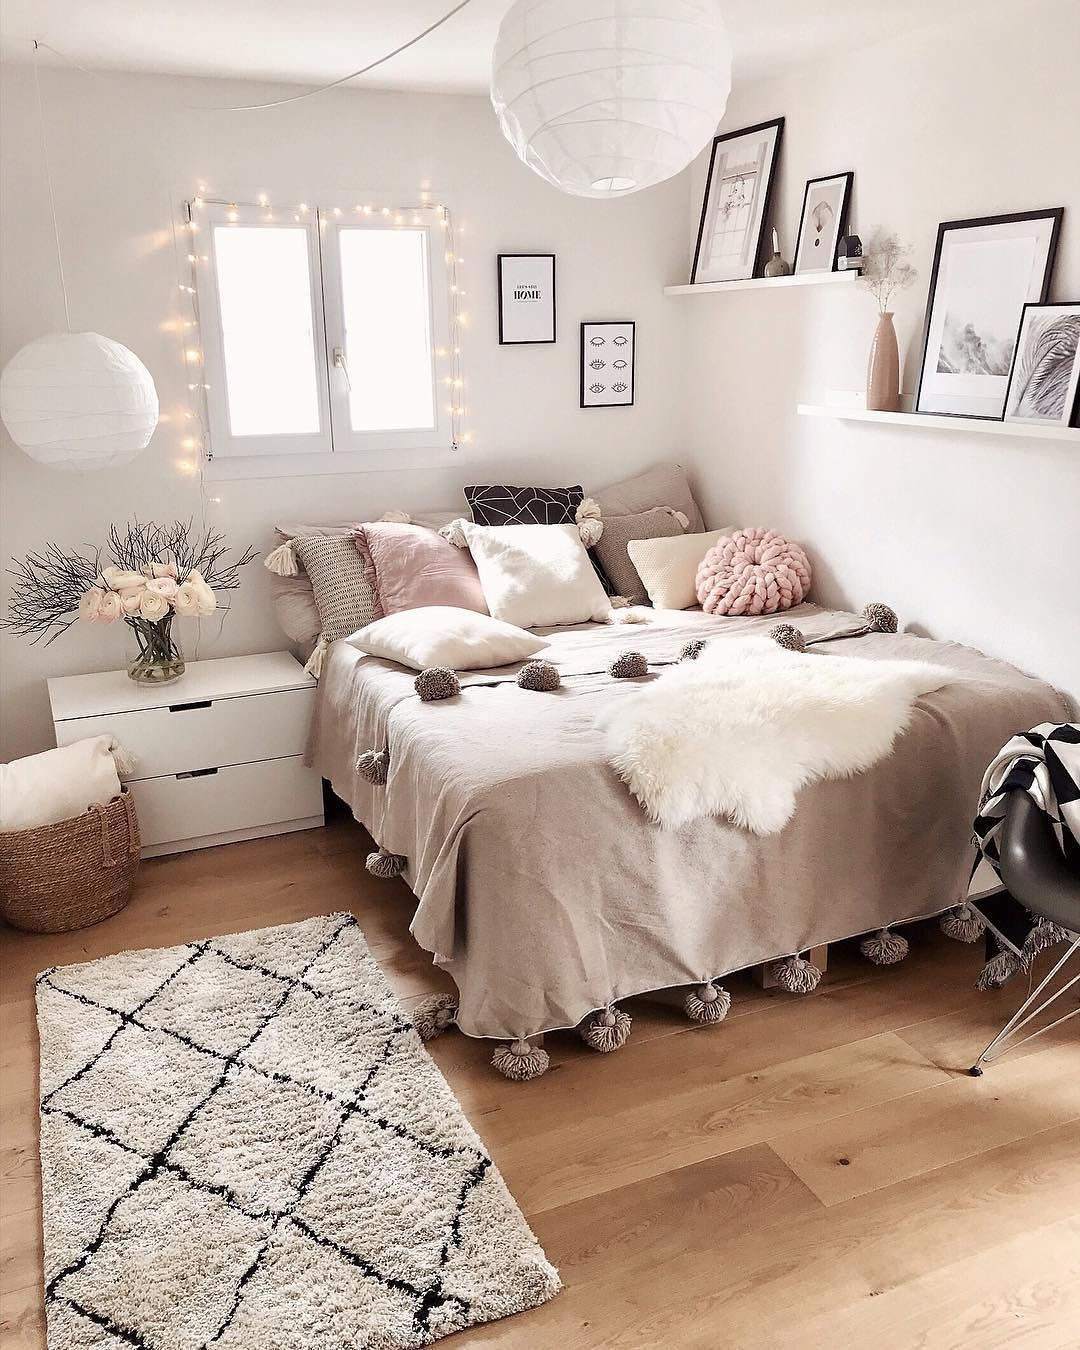 """Bedroom Goals! 🙌🏼 on Instagram: """"Cute!😍 YAY or NAY?💕 Follow"""